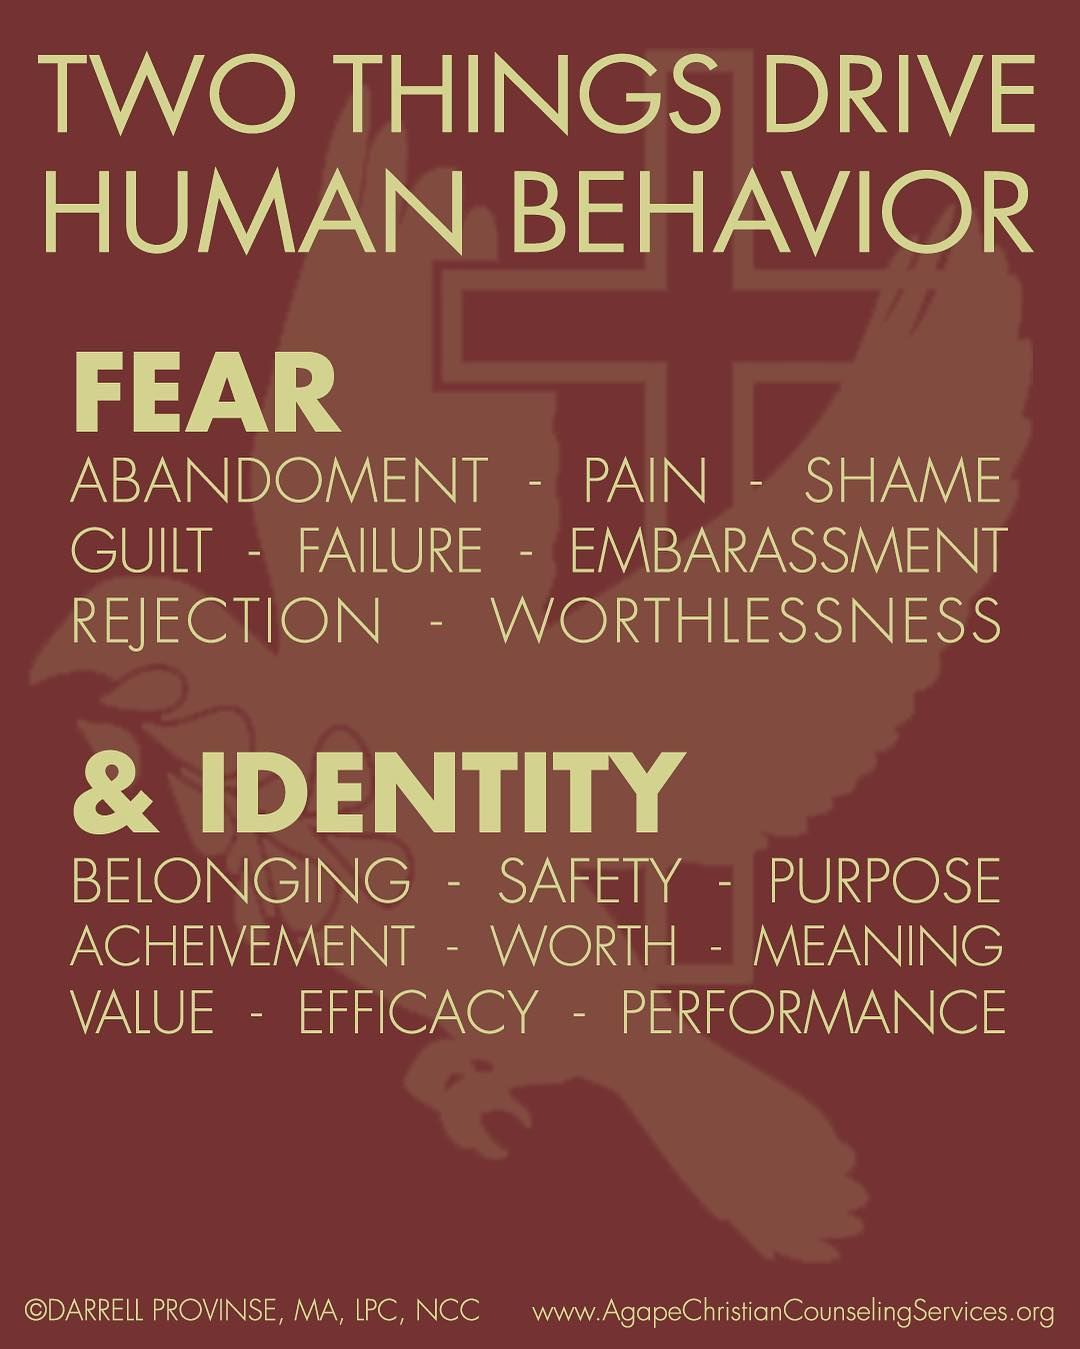 Two things drive all human behavior FEAR & IDENTITY. They